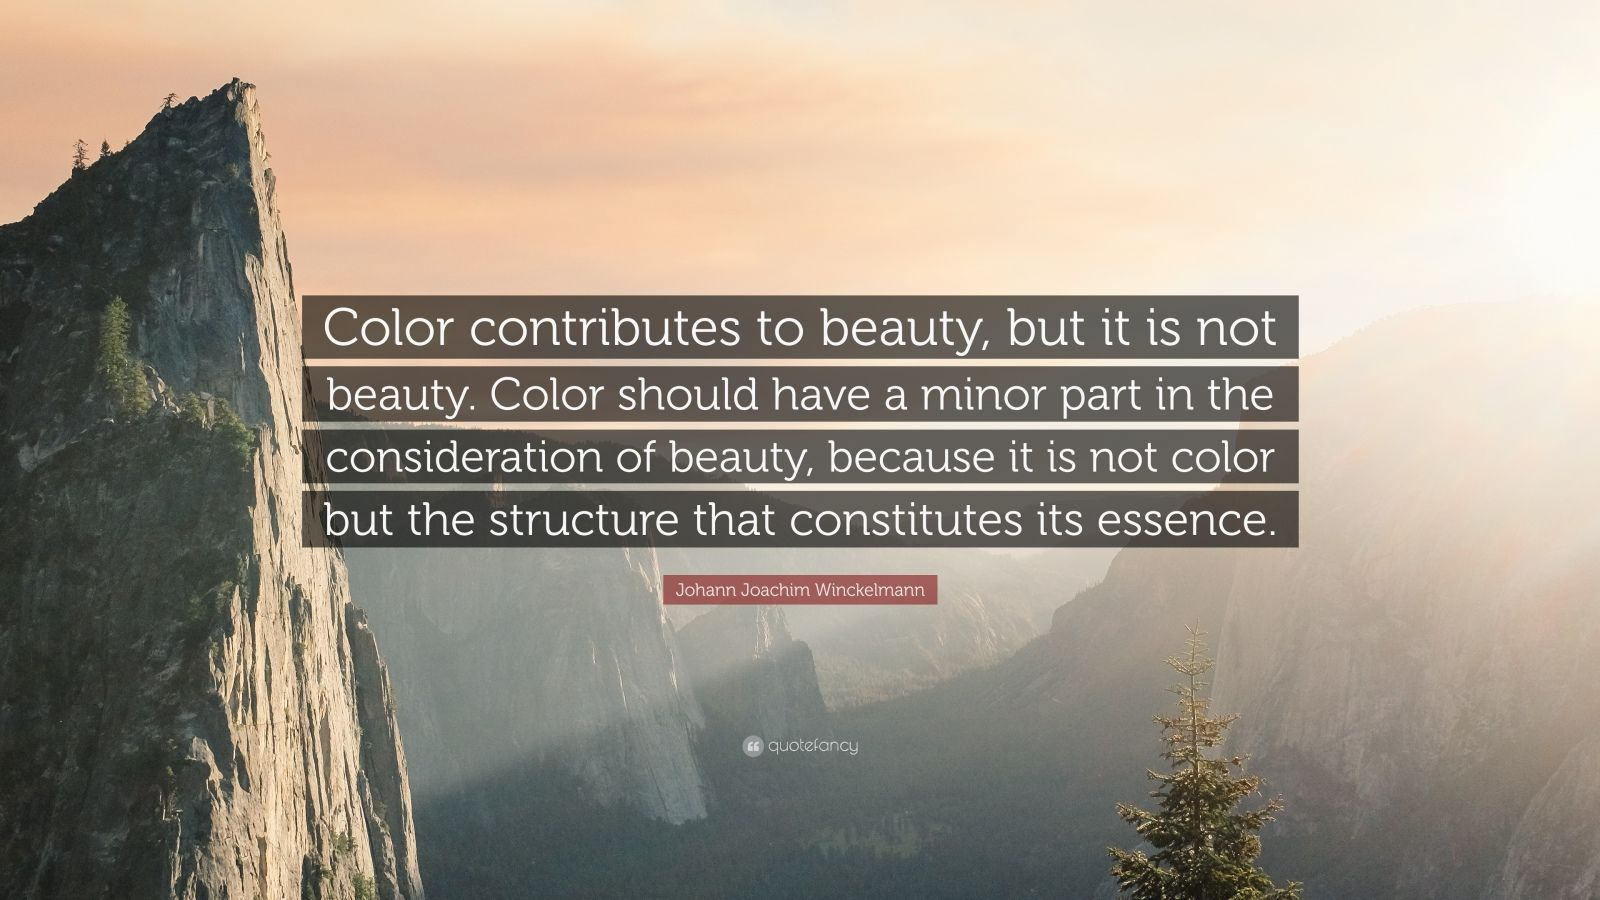 """Johann Joachim Winckelmann Quote: """"Color contributes to beauty, but it is not beauty. Color should have a minor part in the consideration of beauty, because it is not color but the structure that constitutes its essence."""""""